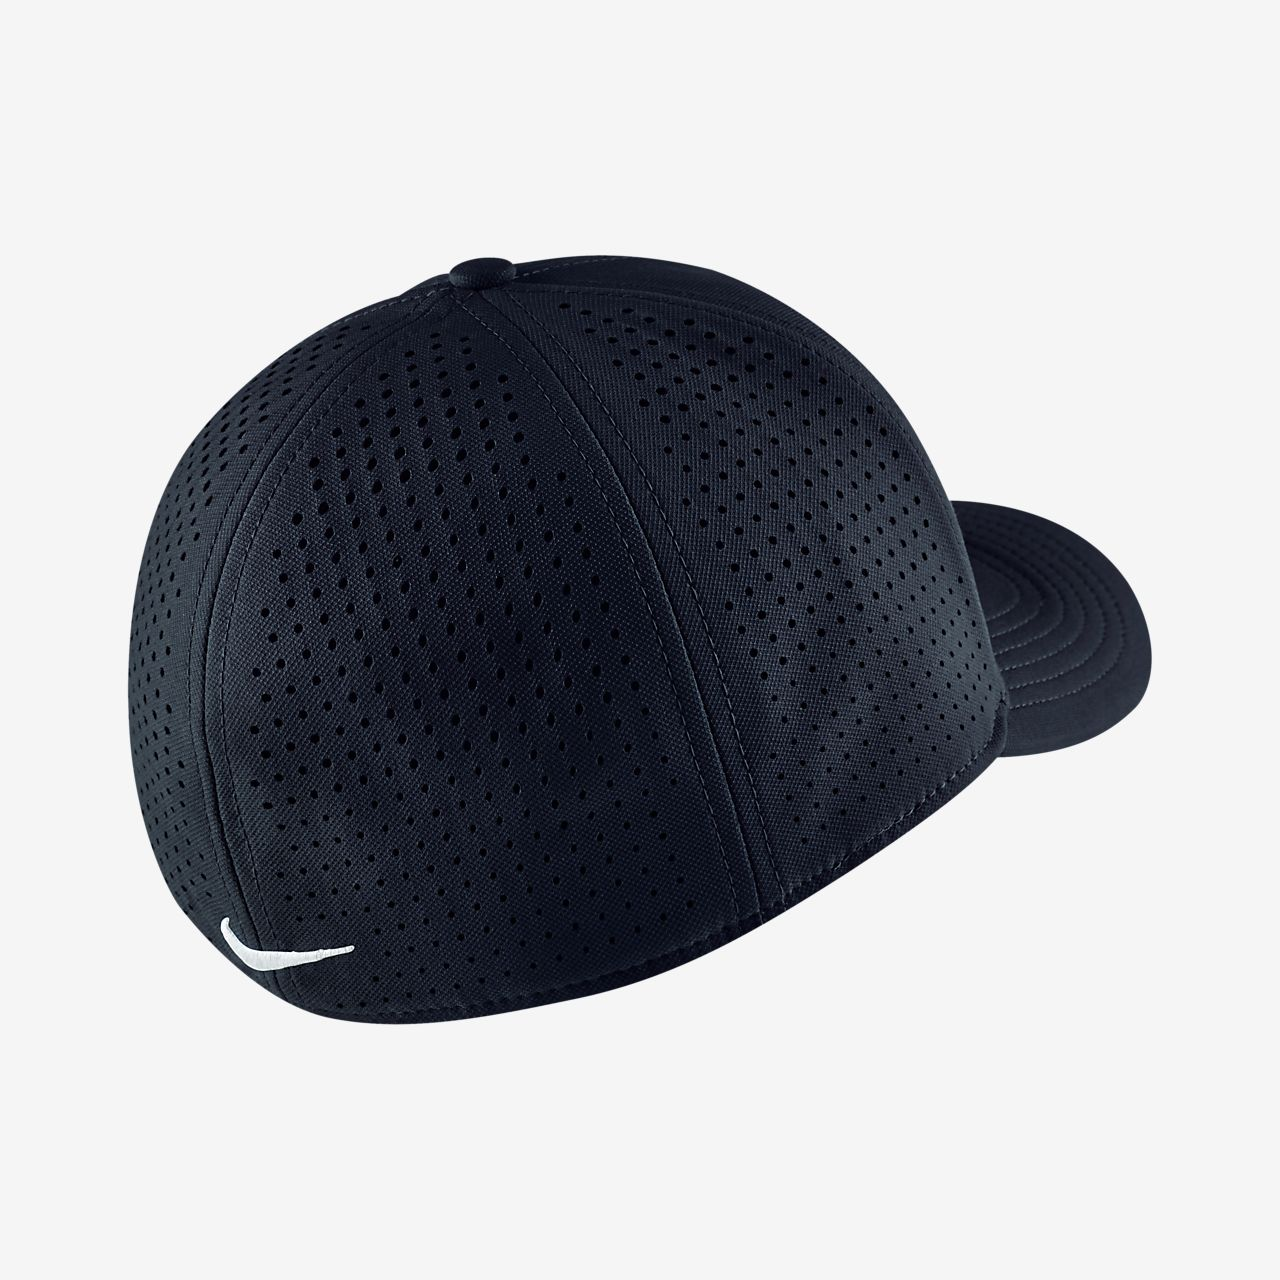 ... where can i buy authentic nike vapor classic 99 sf fitted hat 2a1d0  d3ec3 e51e3 00361 bd31469ae2b6